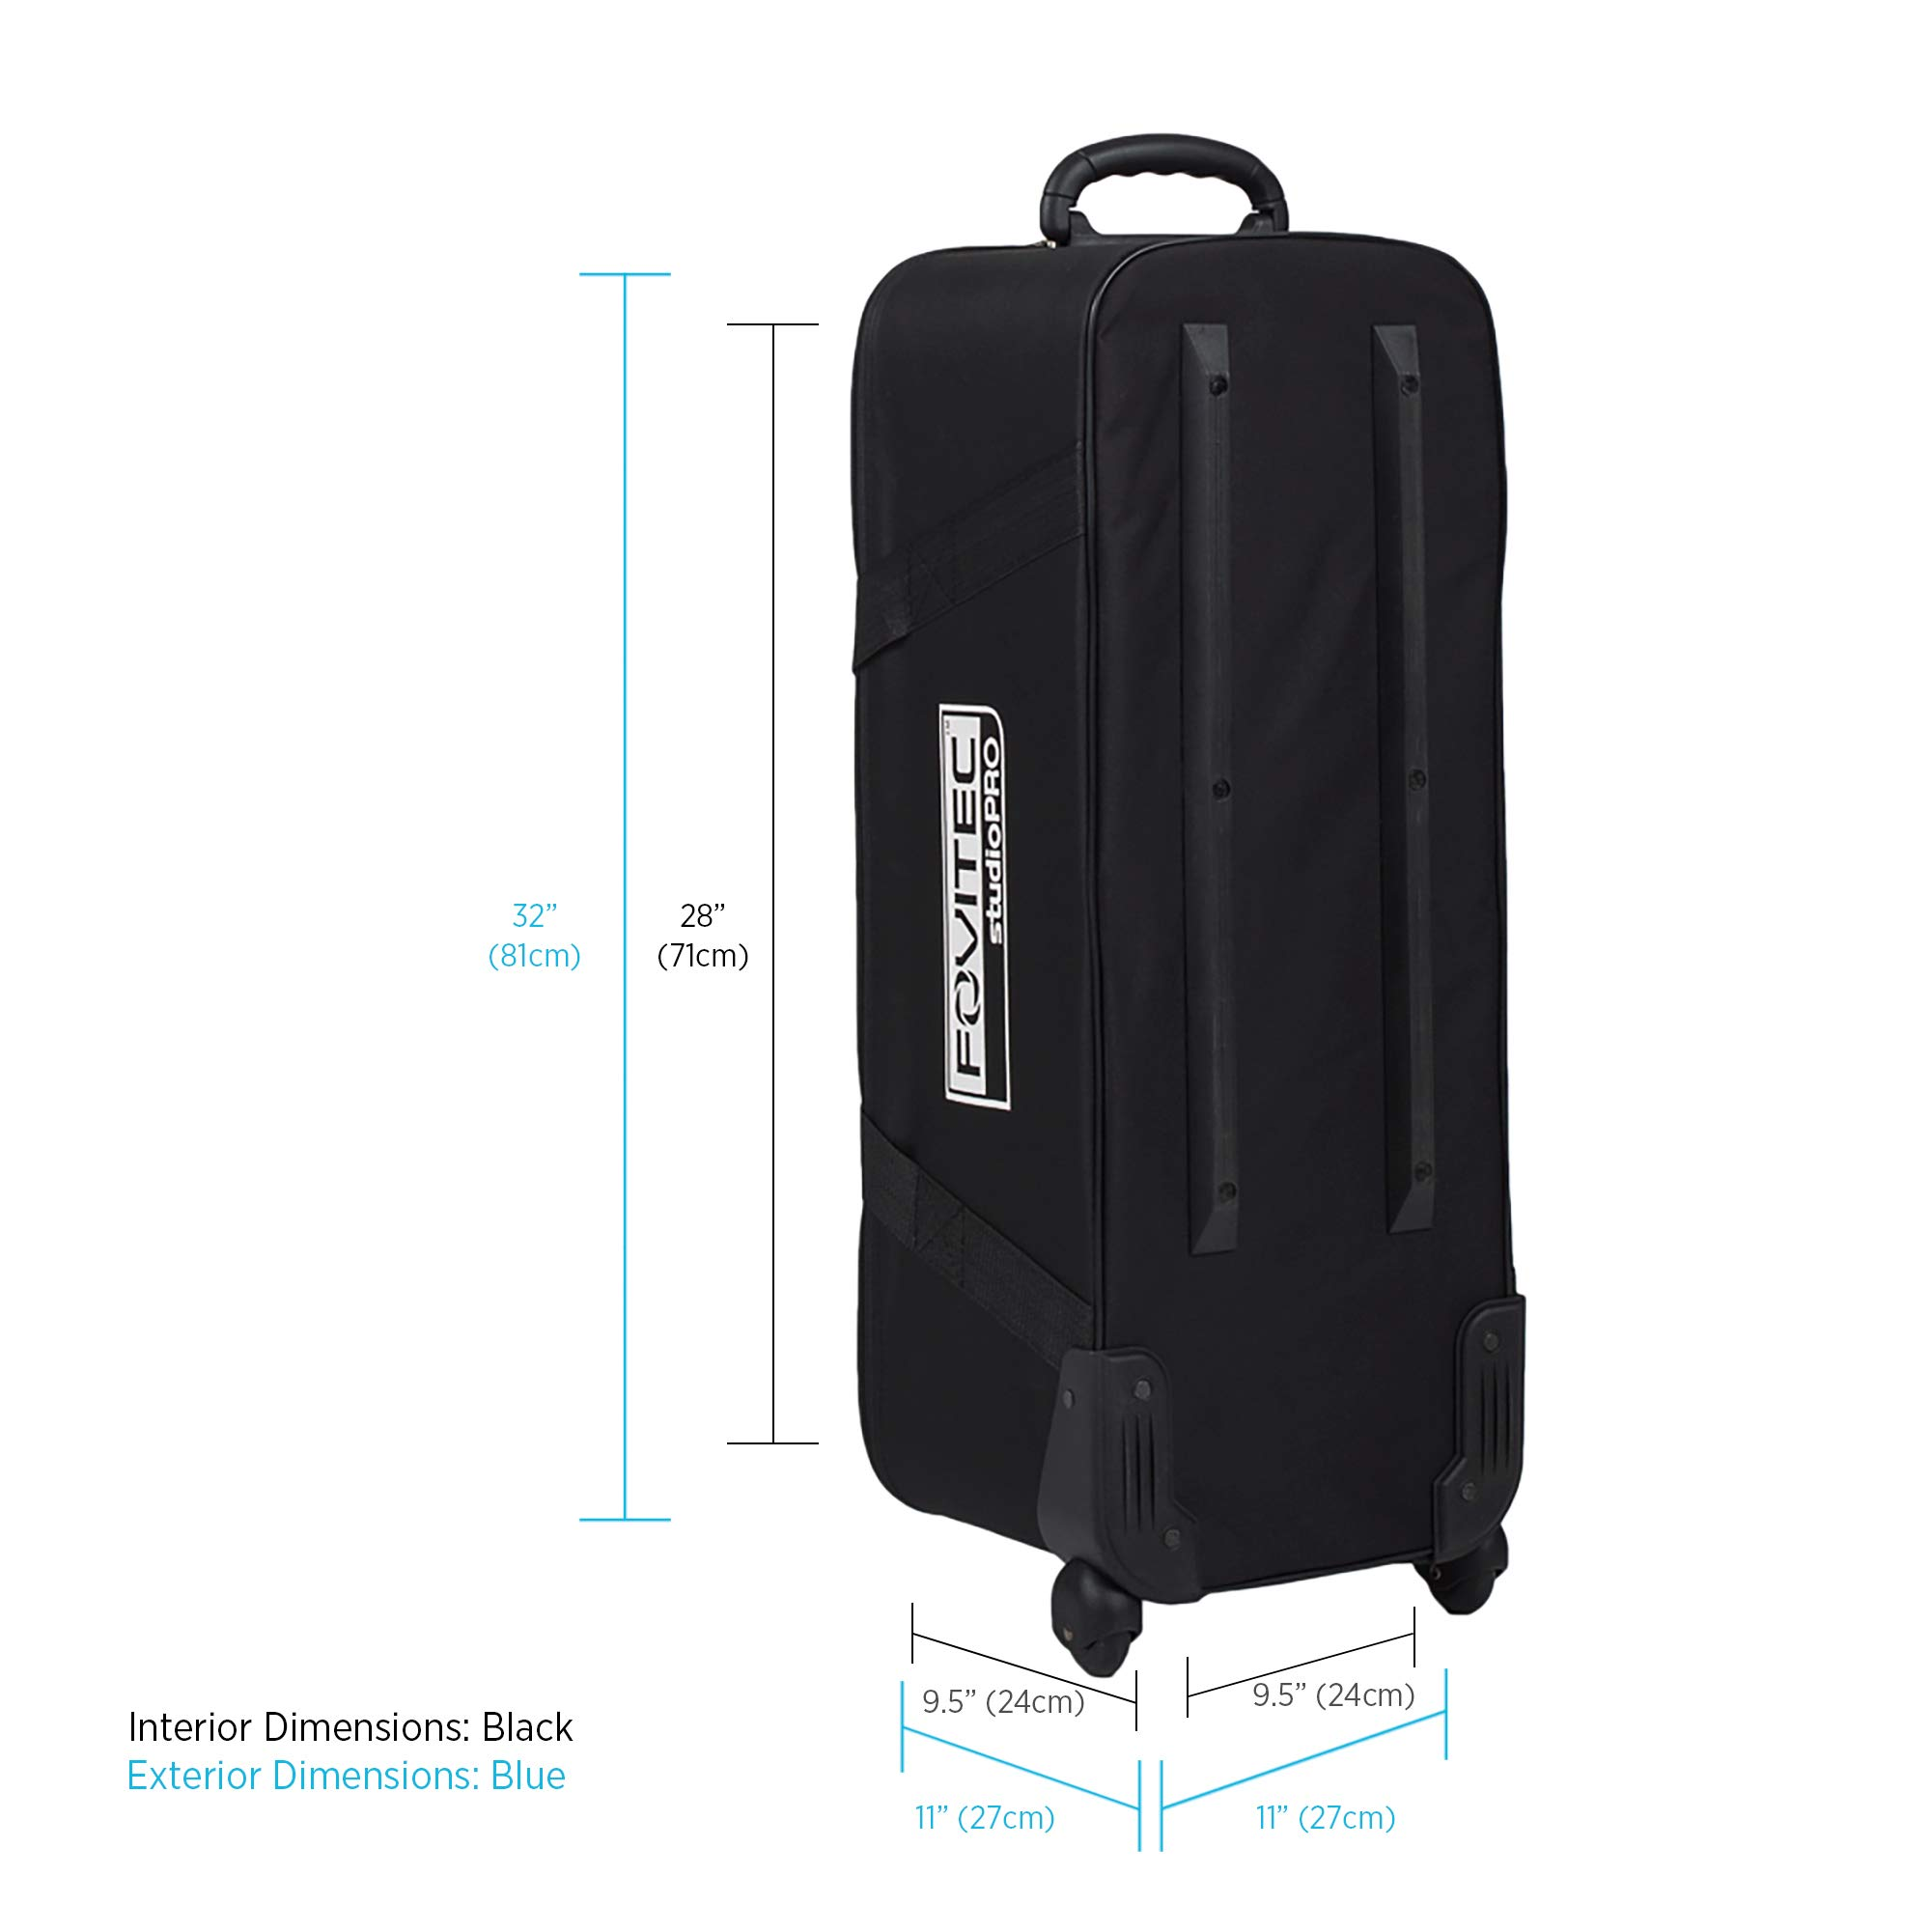 Fovitec - 1x Classic Photography & Video Lighting Equipment Roller Bag - [32'' x 11''x 11''][EZ Glide Wheels][Durable Nylon][Fleece Lining] by Fovitec (Image #2)